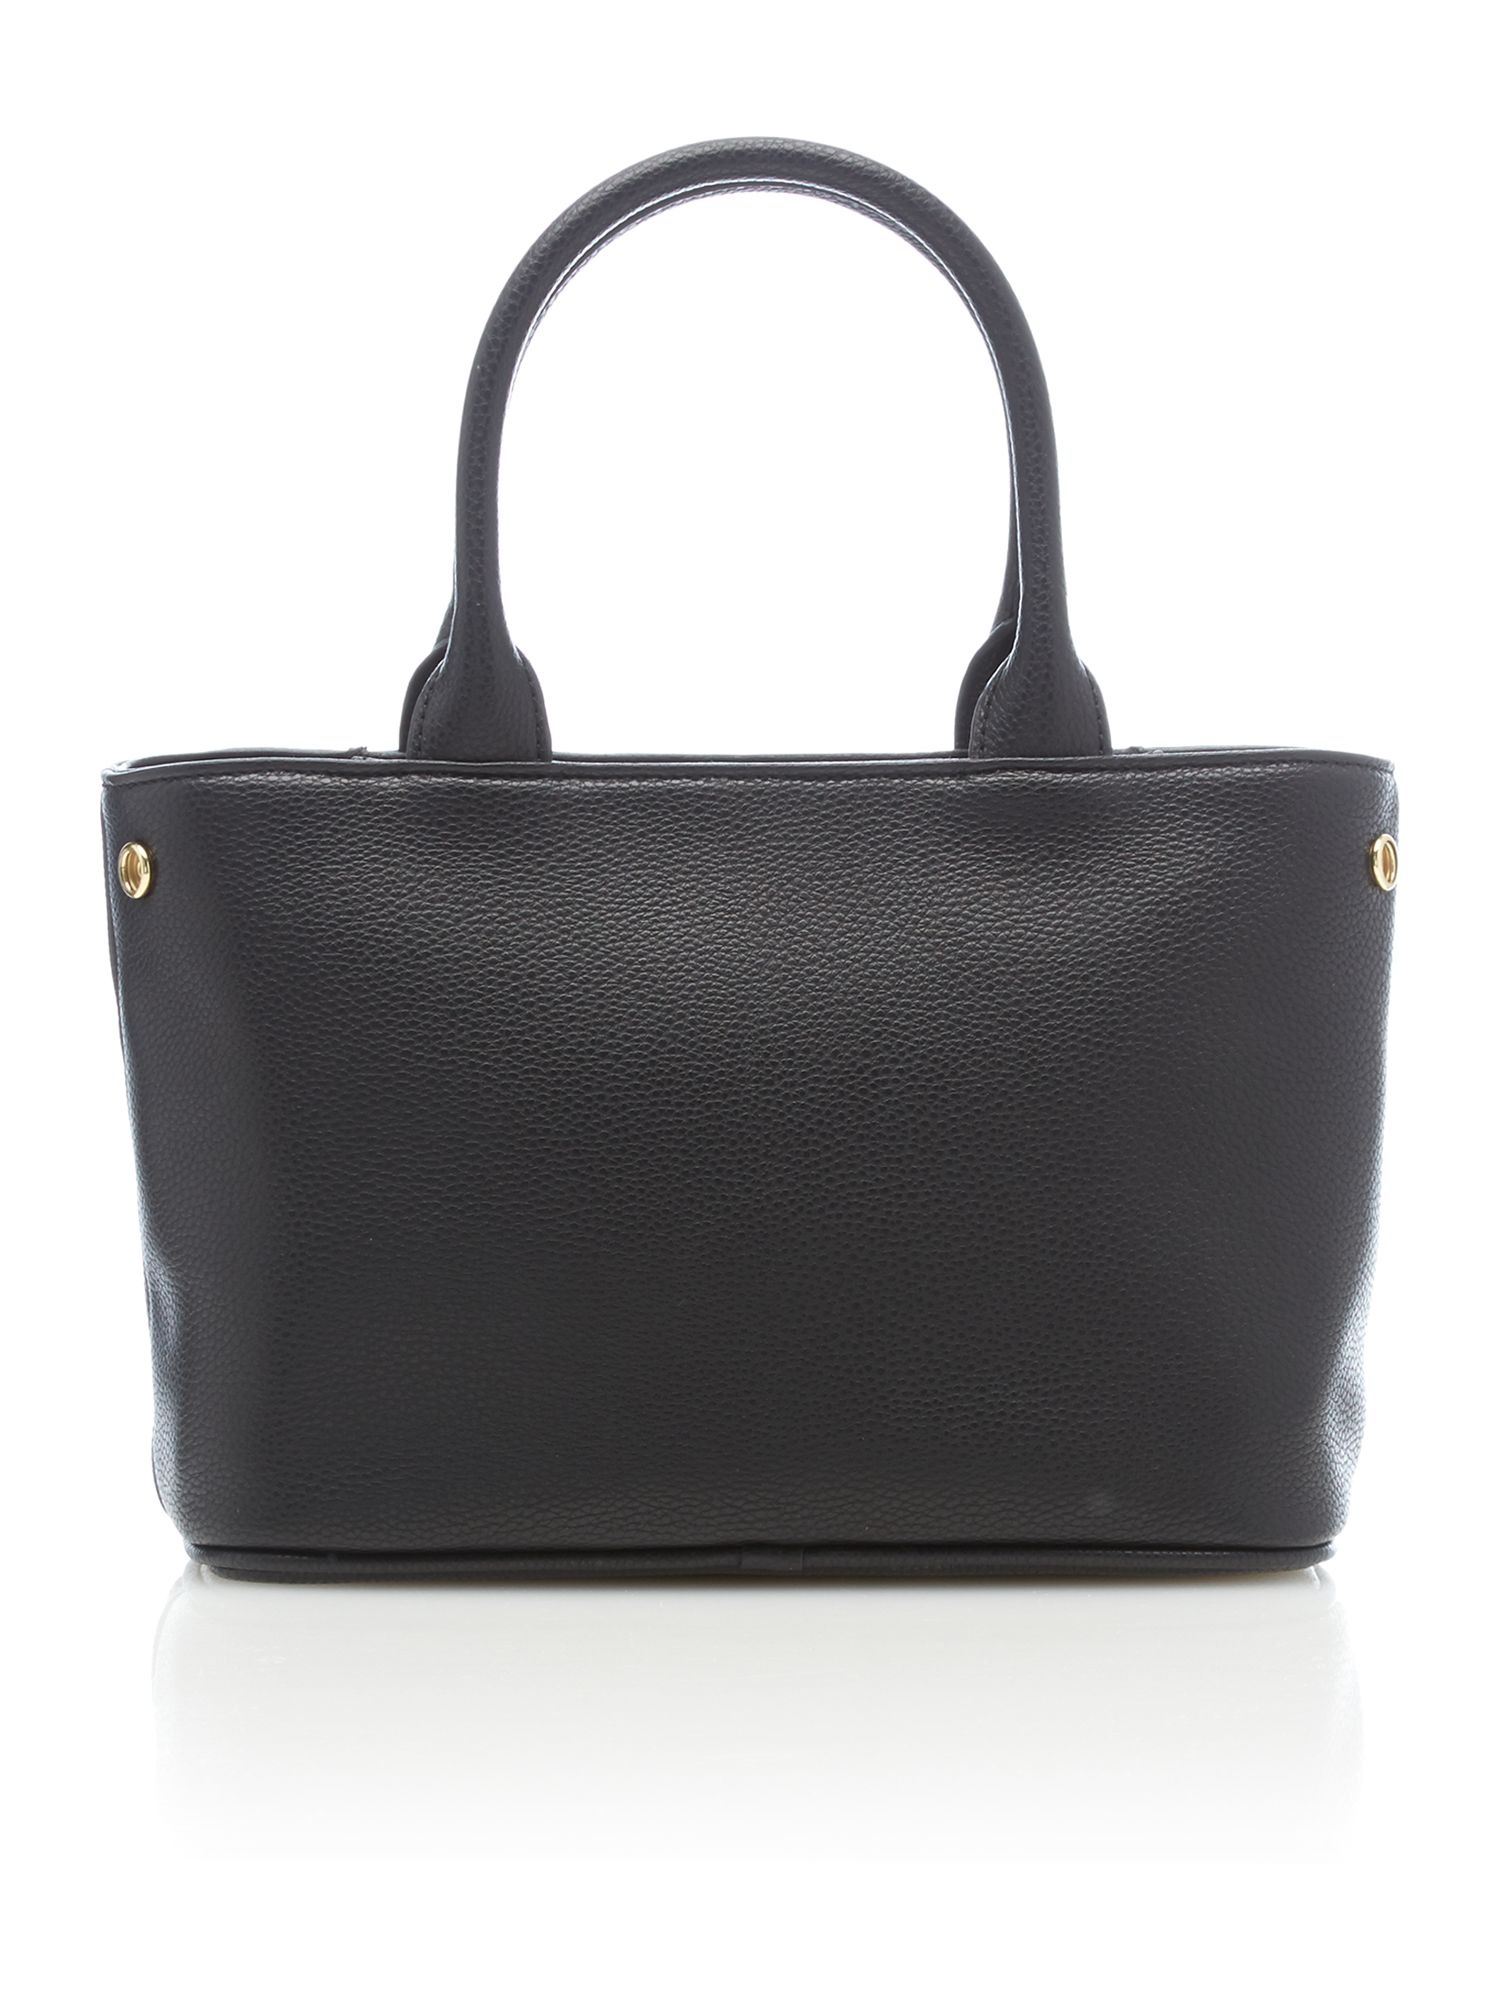 Bow black small tote bag